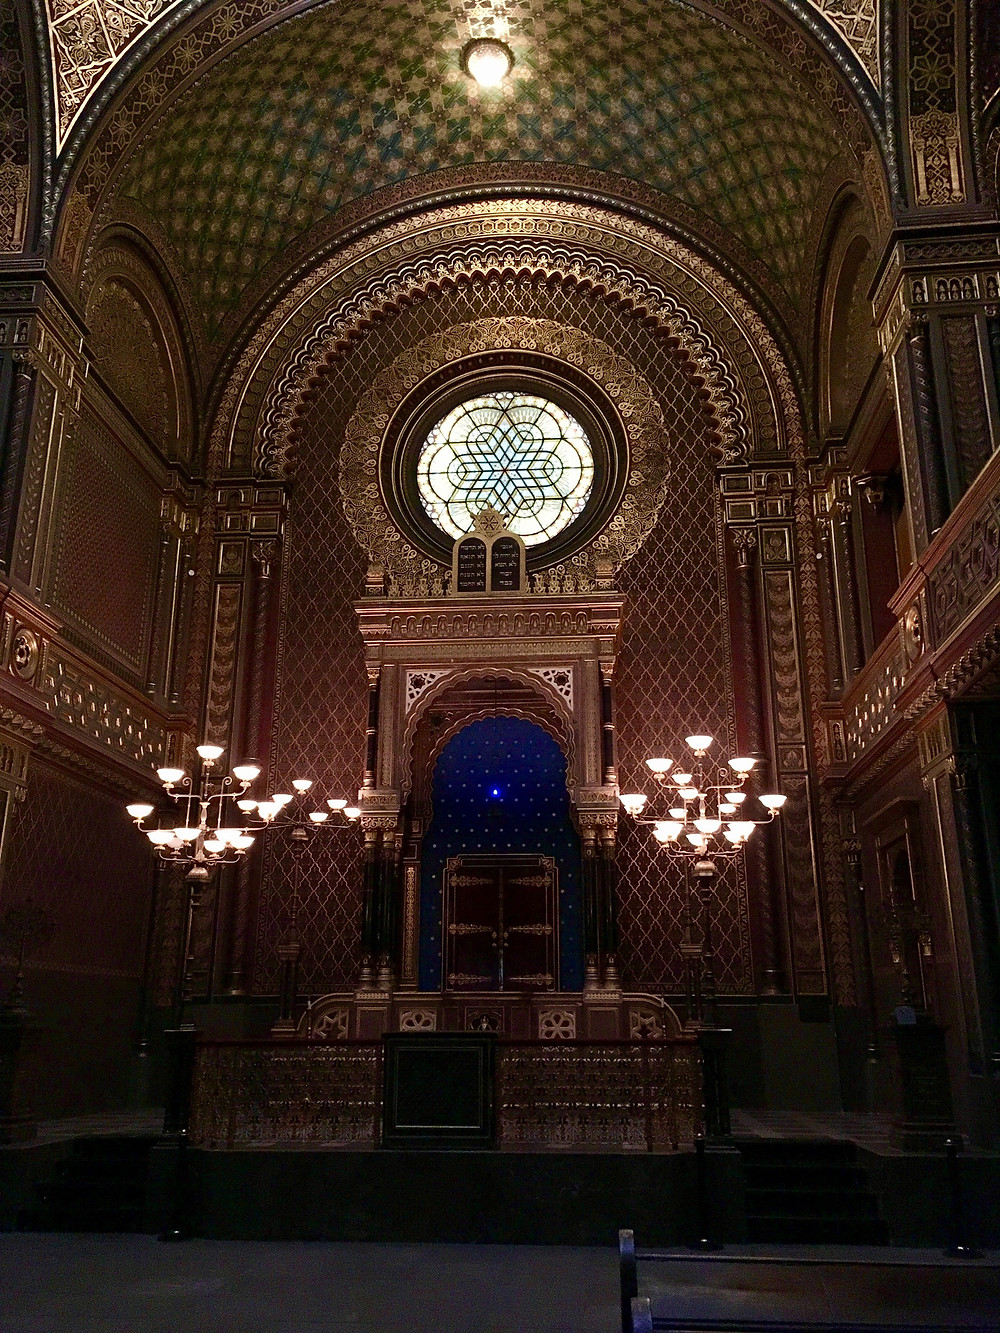 The spectacularly beautiful Spanish Synagogue